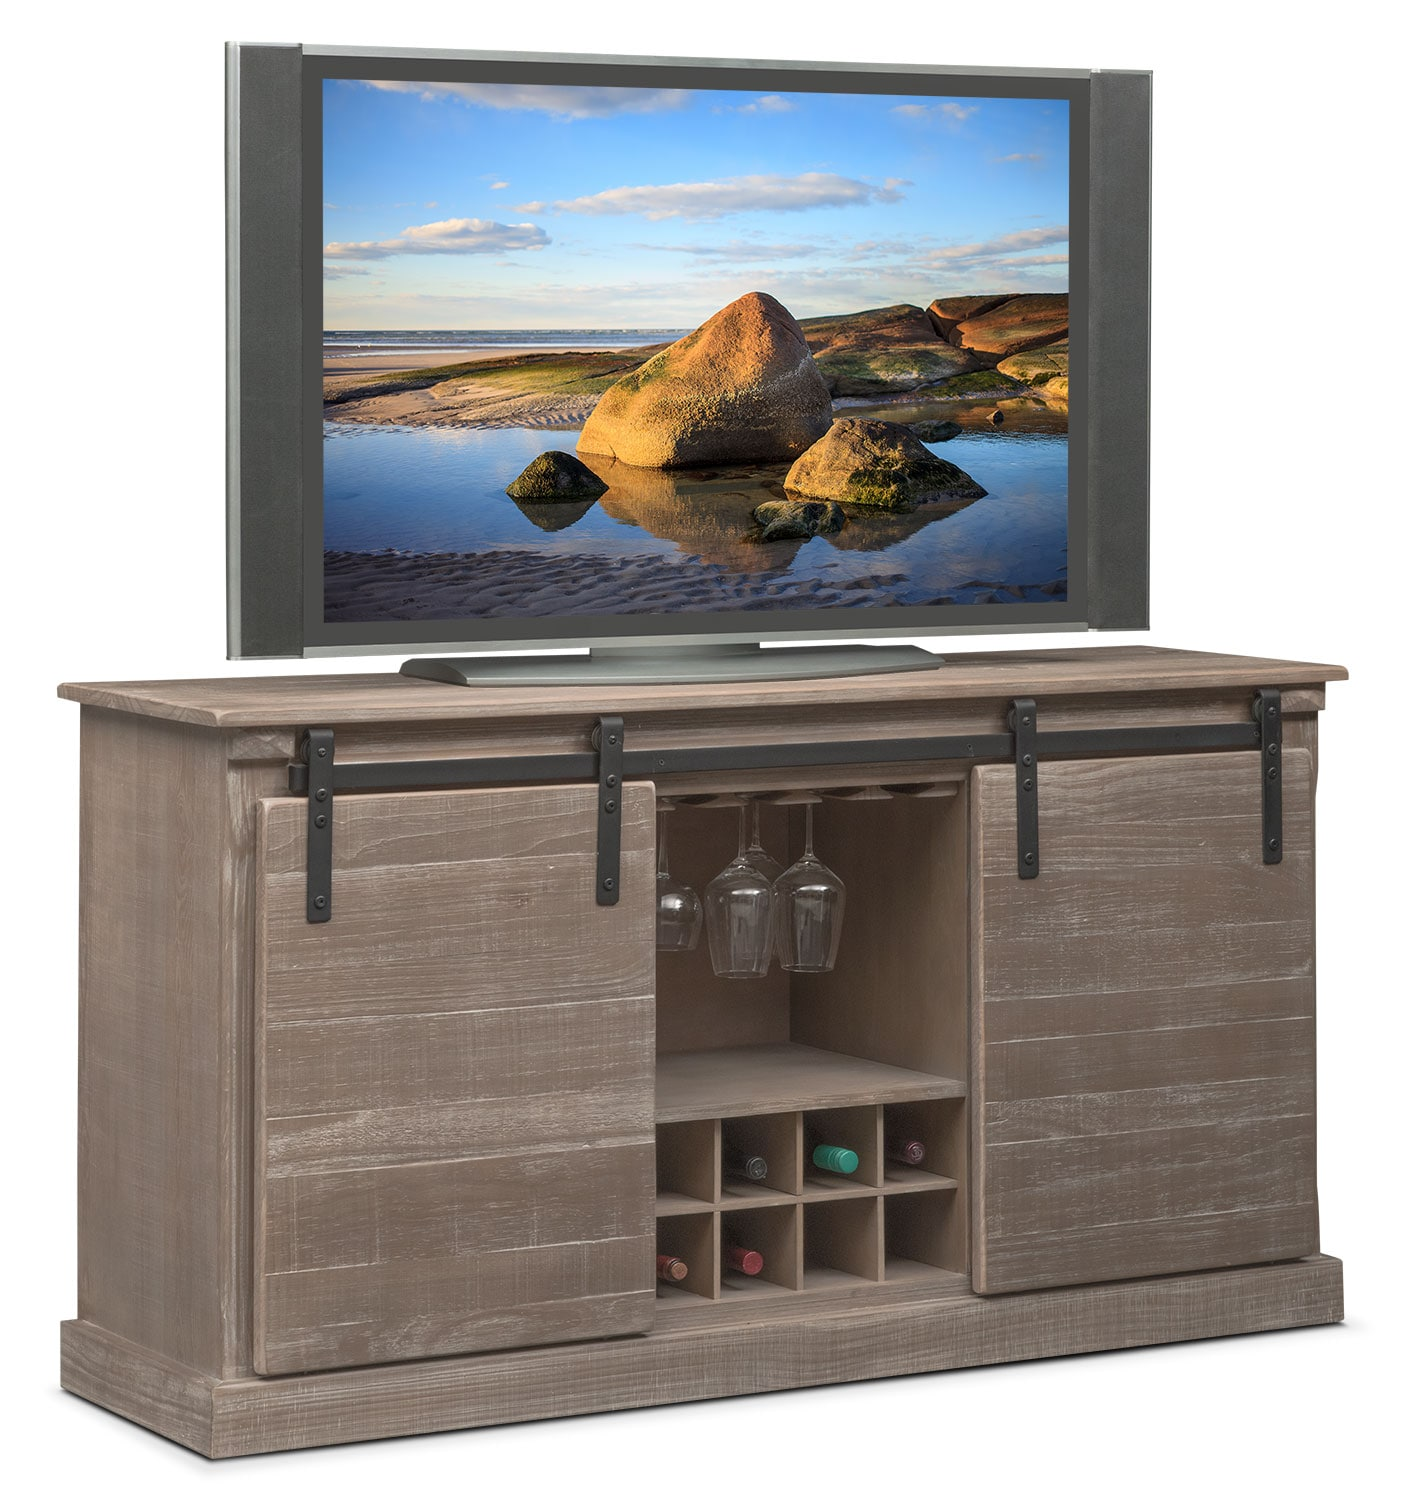 Entertainment Furniture - Ashcroft Media Credenza with Wine Storage - Gray